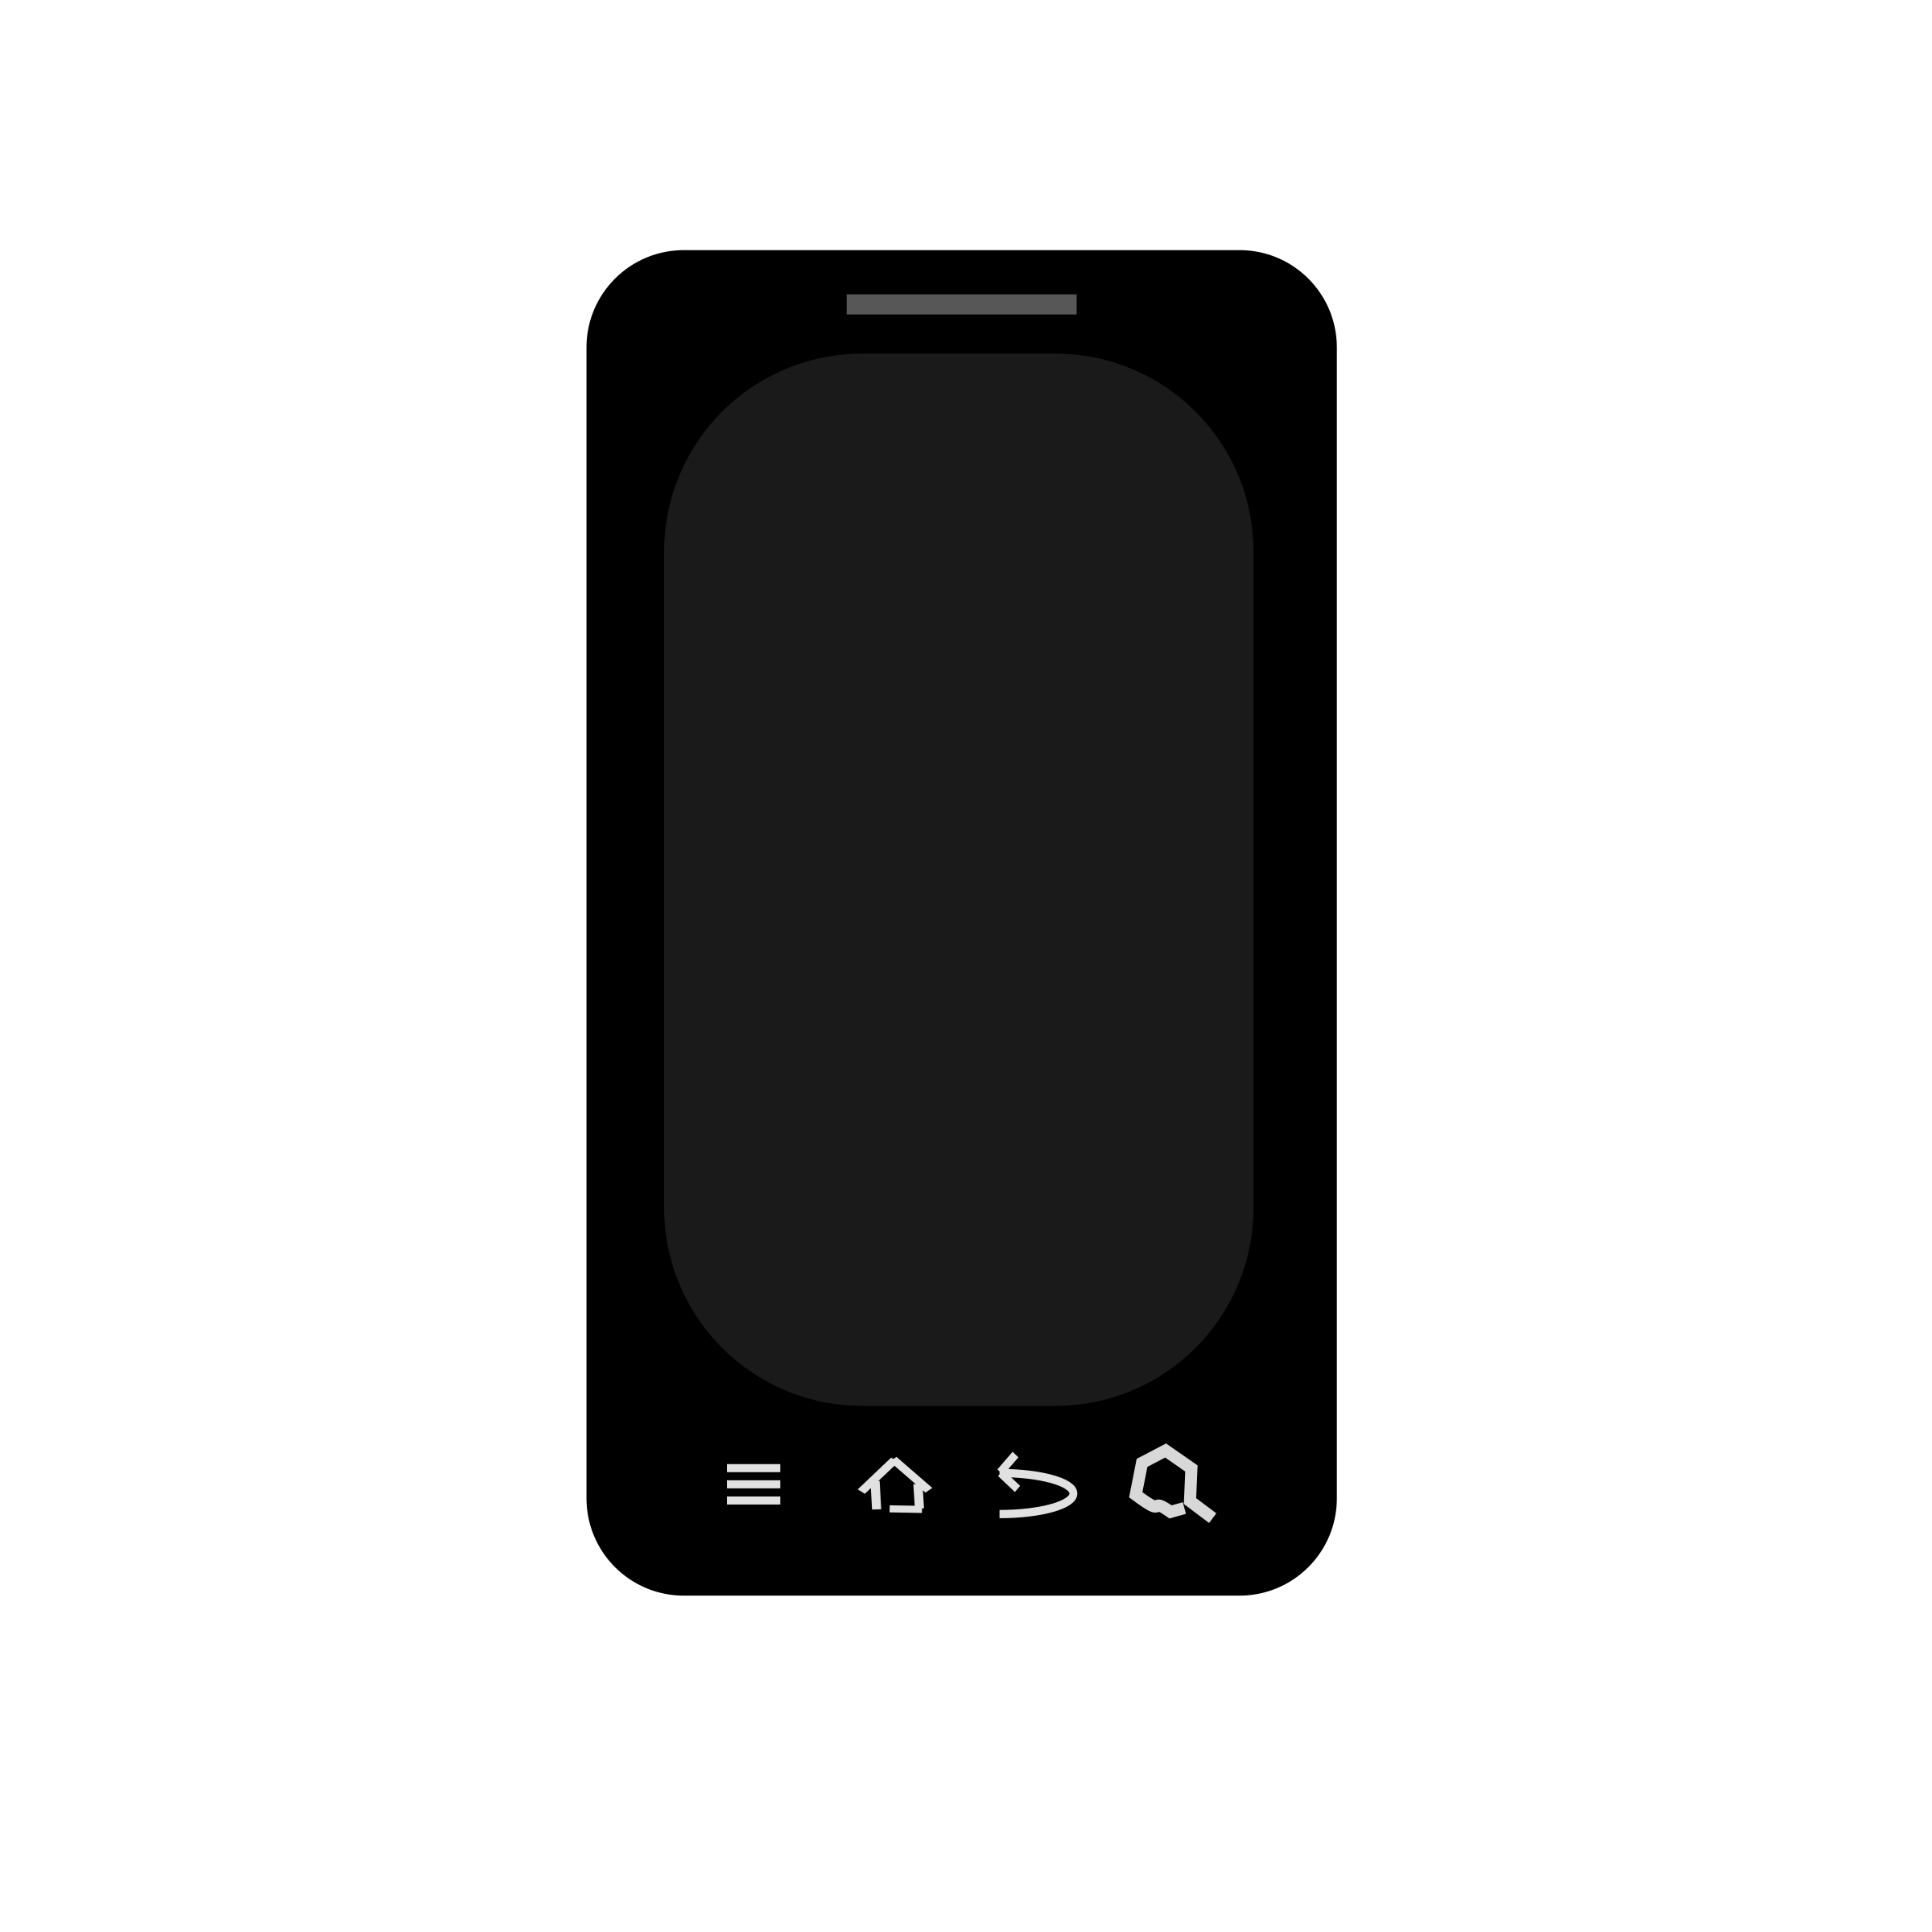 Phone clipart moble. Smart big image png